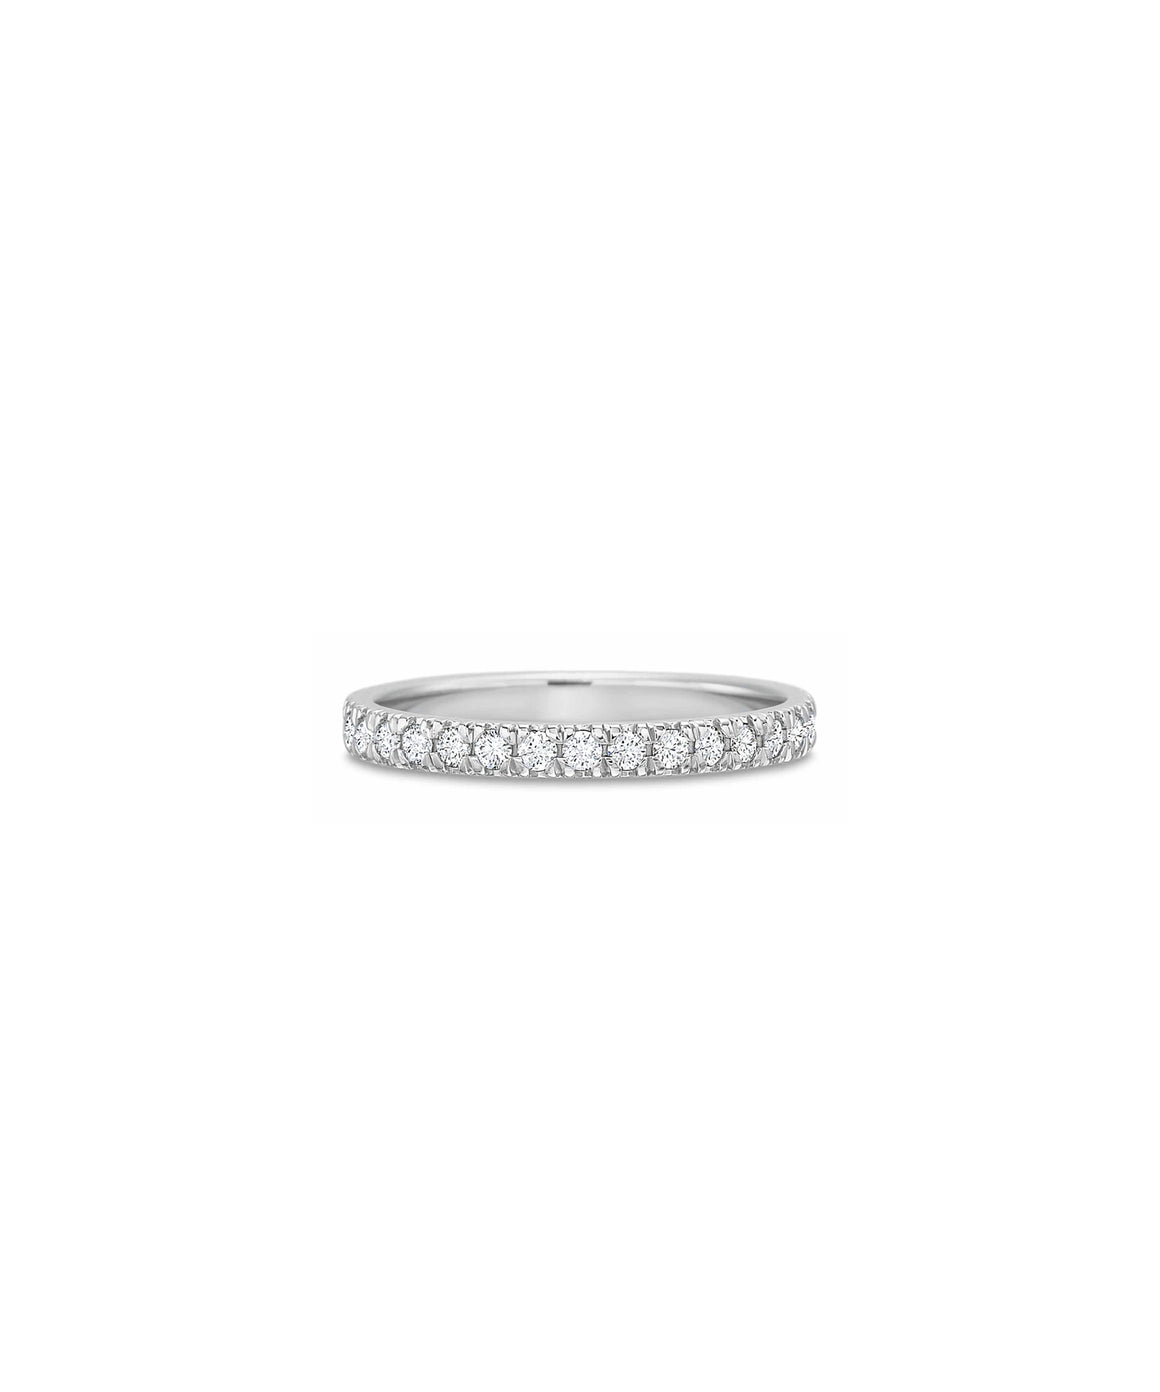 White Gold Round Diamond Eternity Band - Lesley Ann Jewels